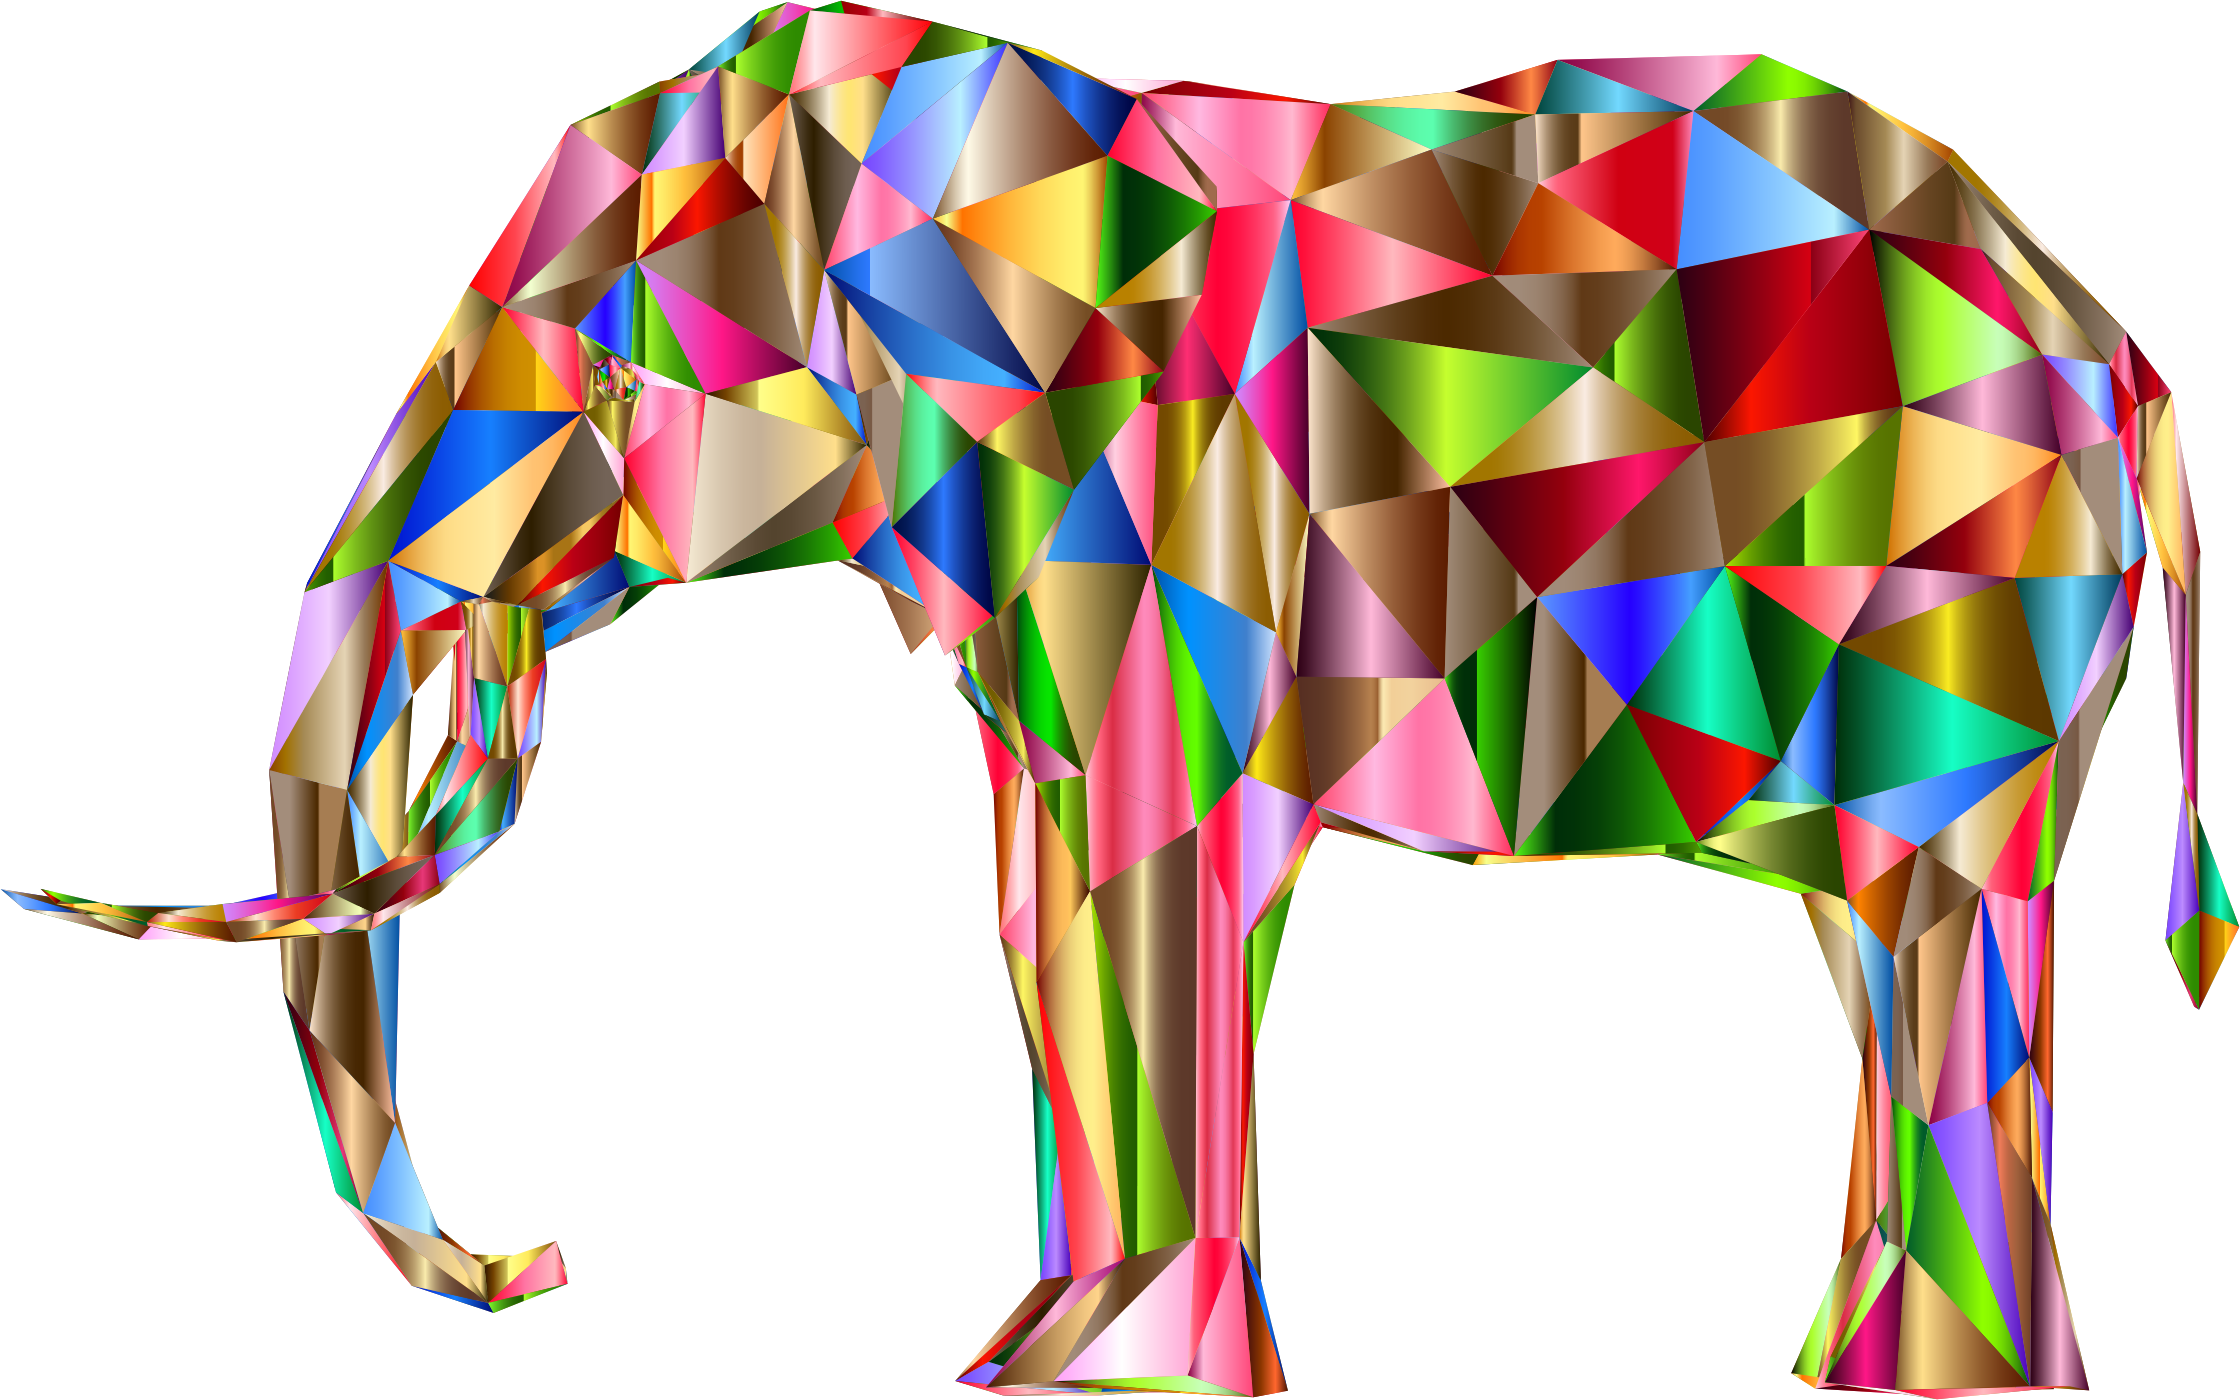 Prismatic Low Poly 3D Elephant Variation 5 by GDJ